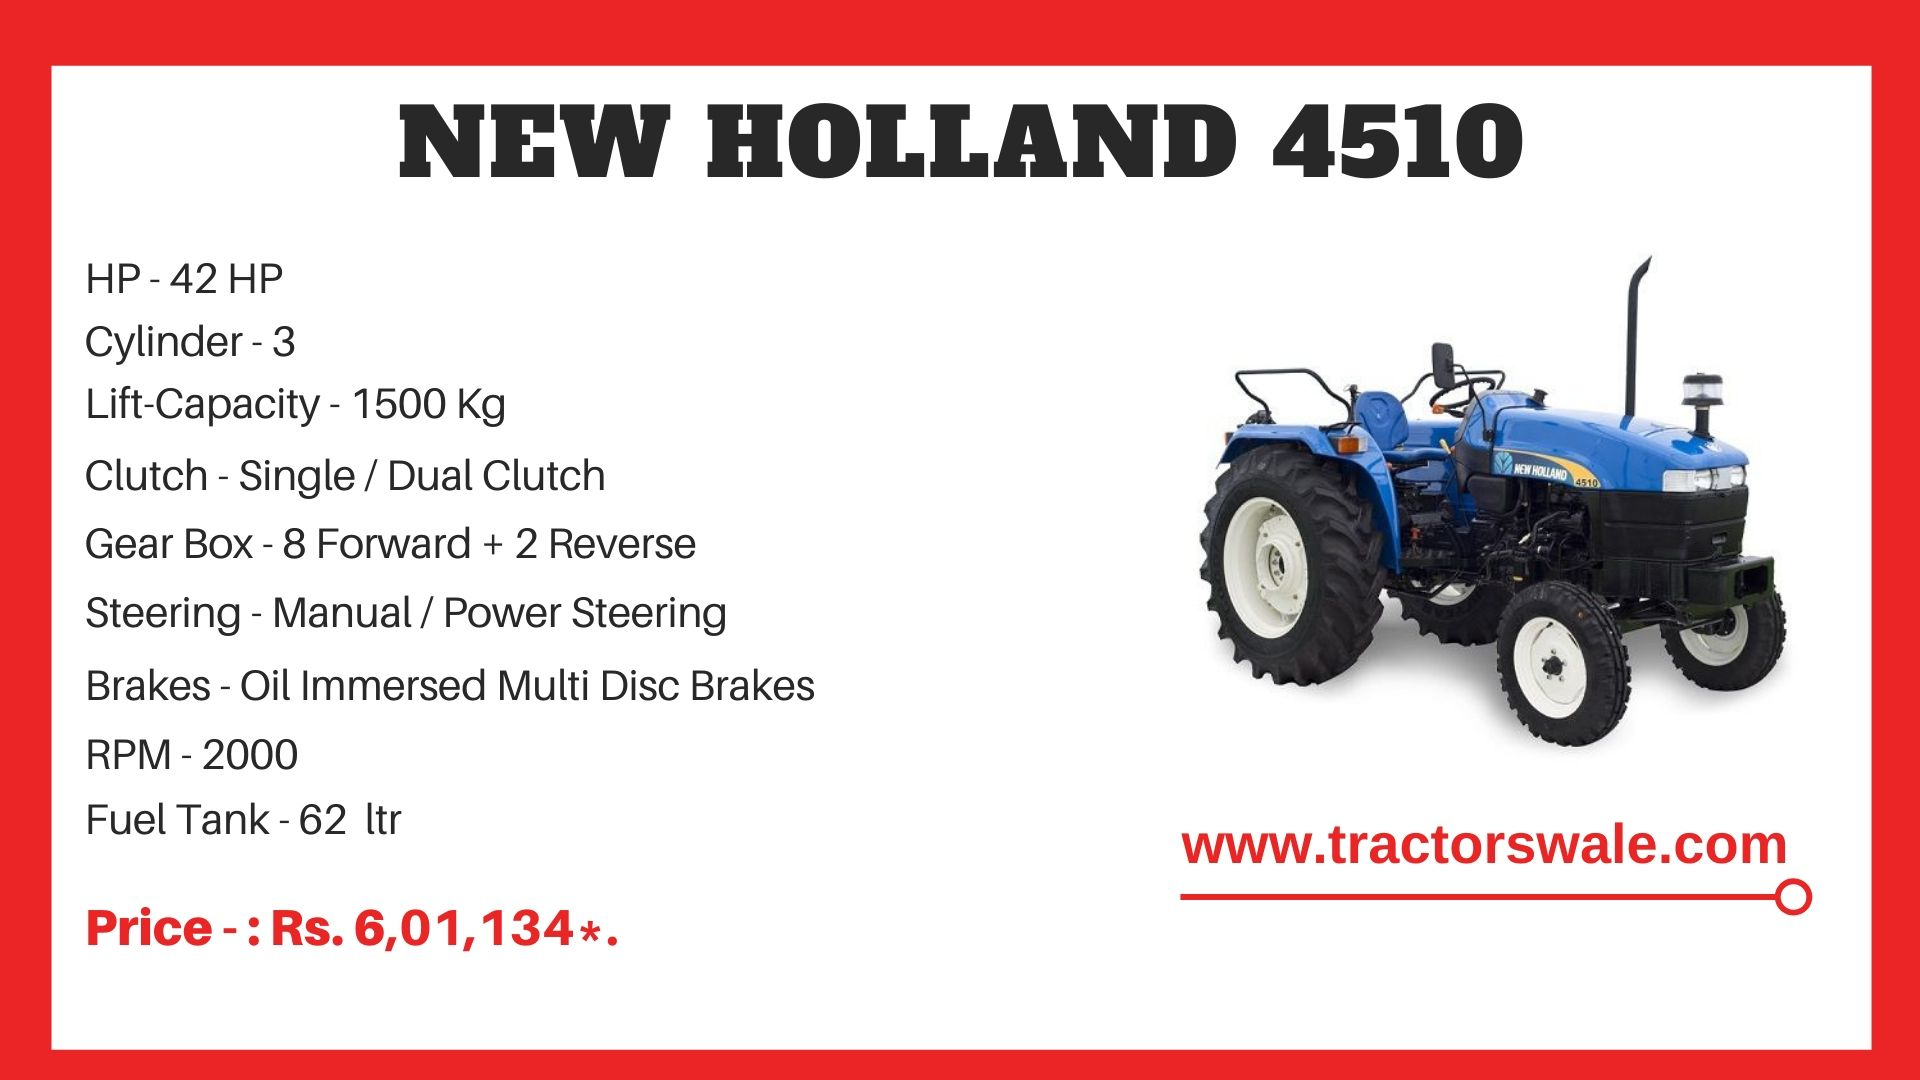 New Holland 4510 tractor specs